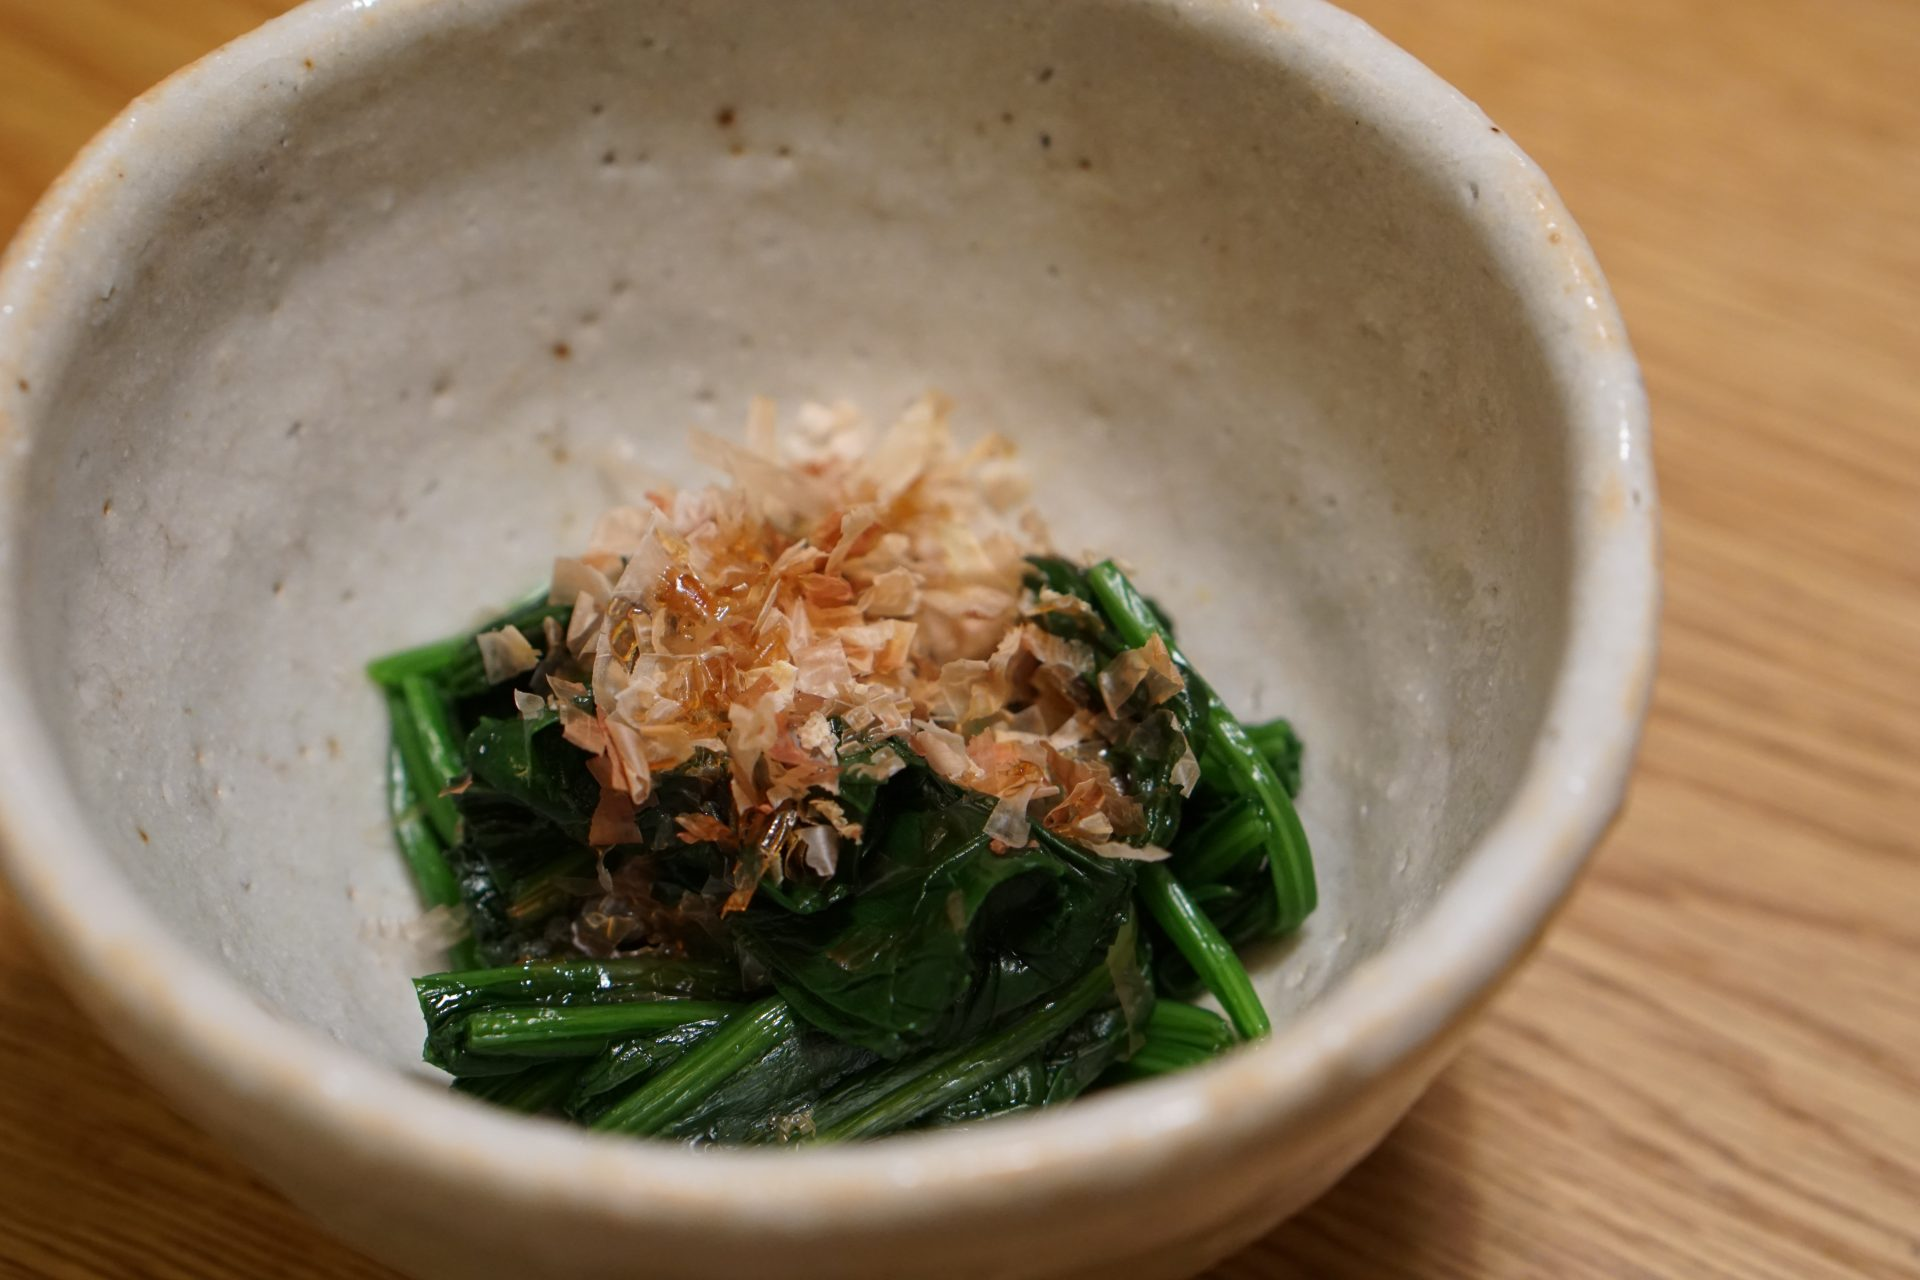 Spinach with Soy Sauce and Katsuobushi